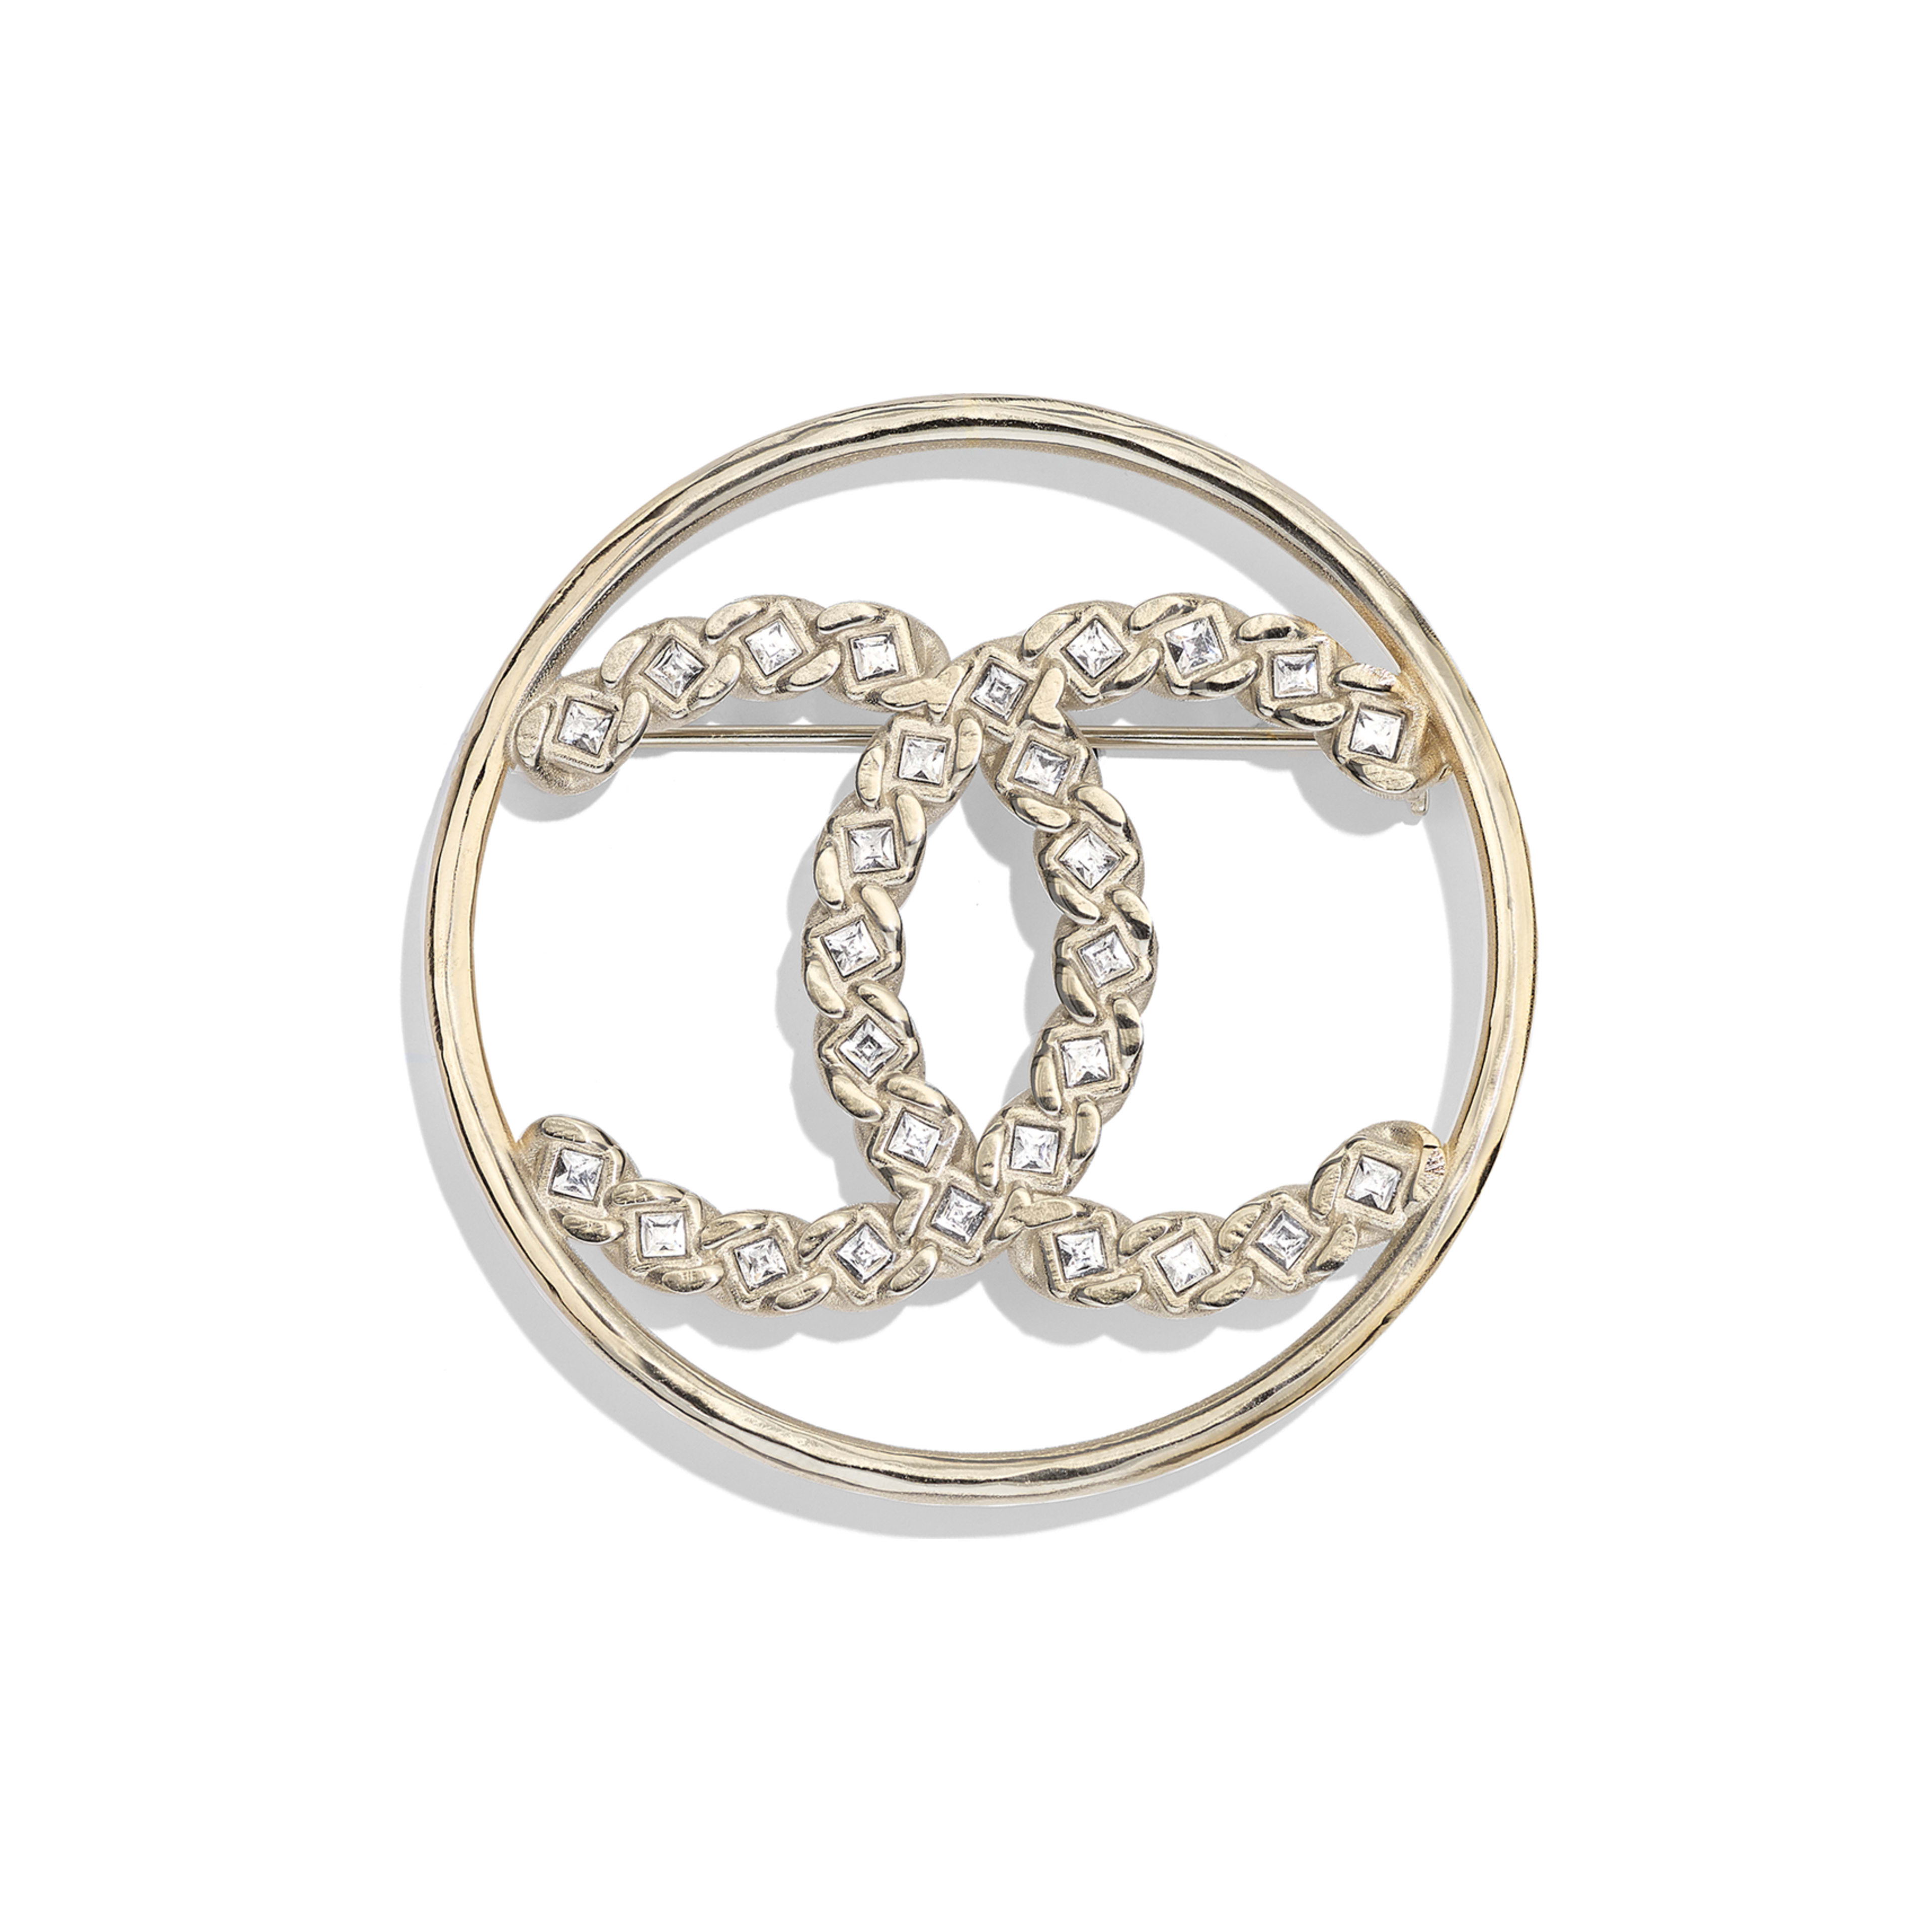 Brooch - Gold & Crystal - Metal & Strass - Default view - see full sized version